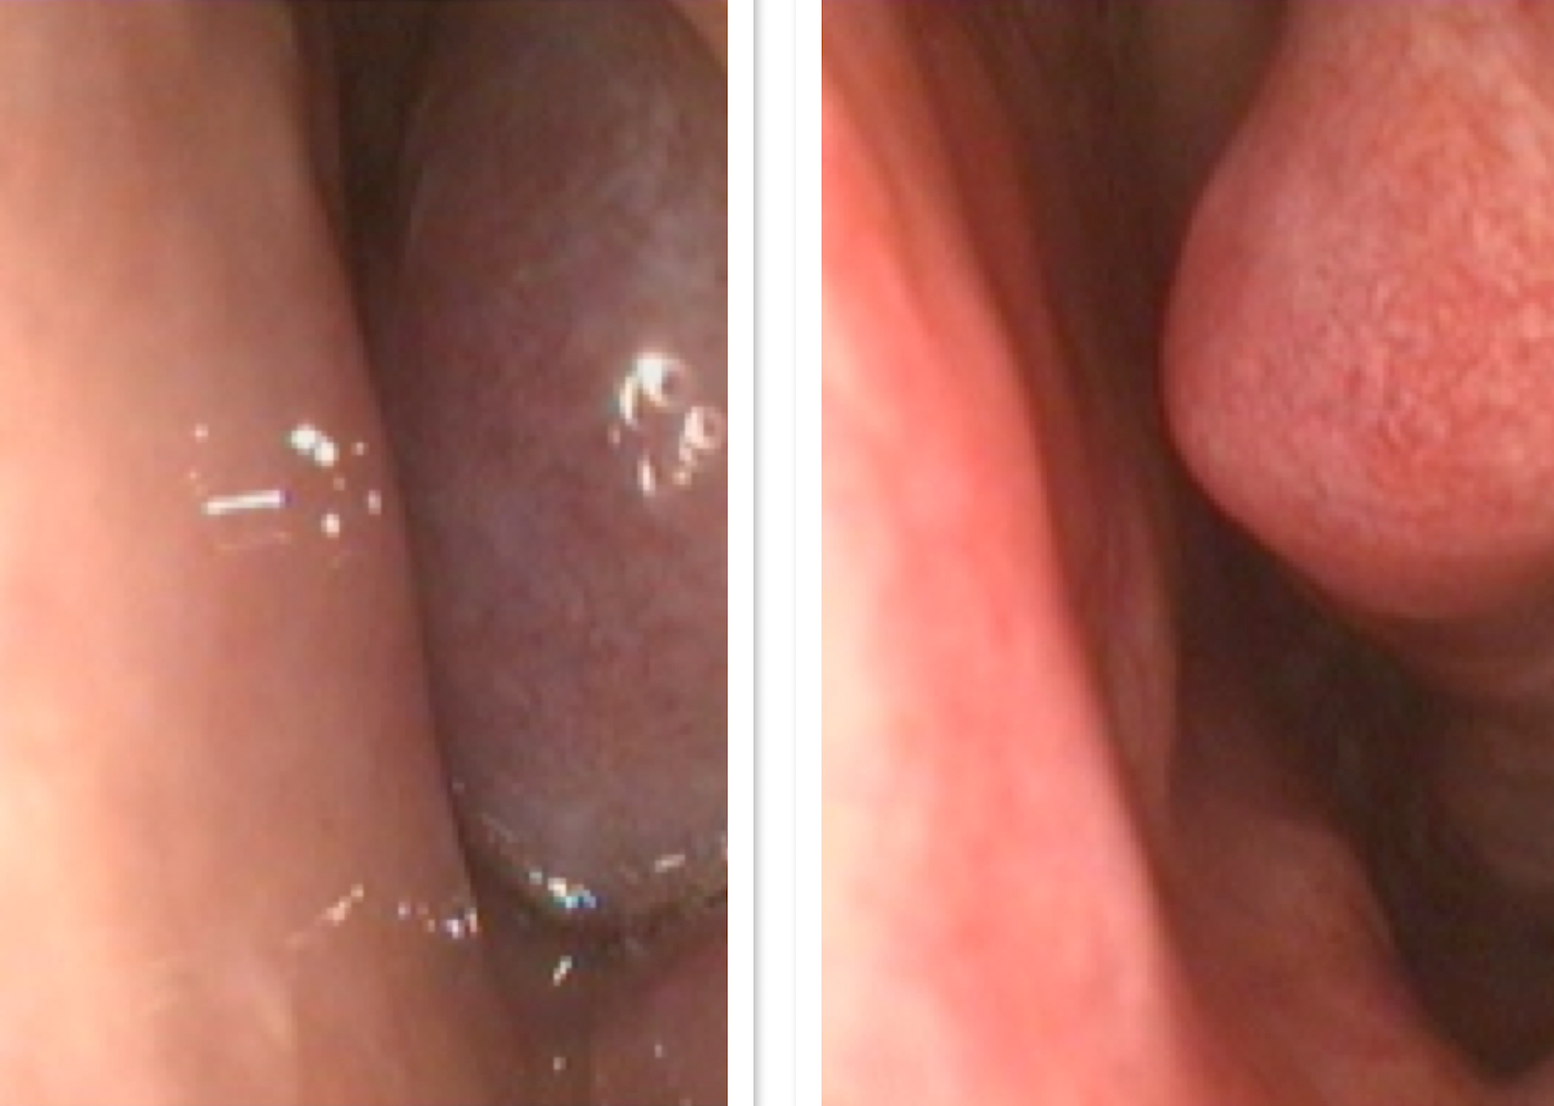 Figure 5: severe swelling of the turbinates as above can cause snoring. Treatment of this can be curative of snoring. In selected patients, simple treatments with nasal allergy spray can be miraculous. In others, surgical treatment of the turbinates can give a great result